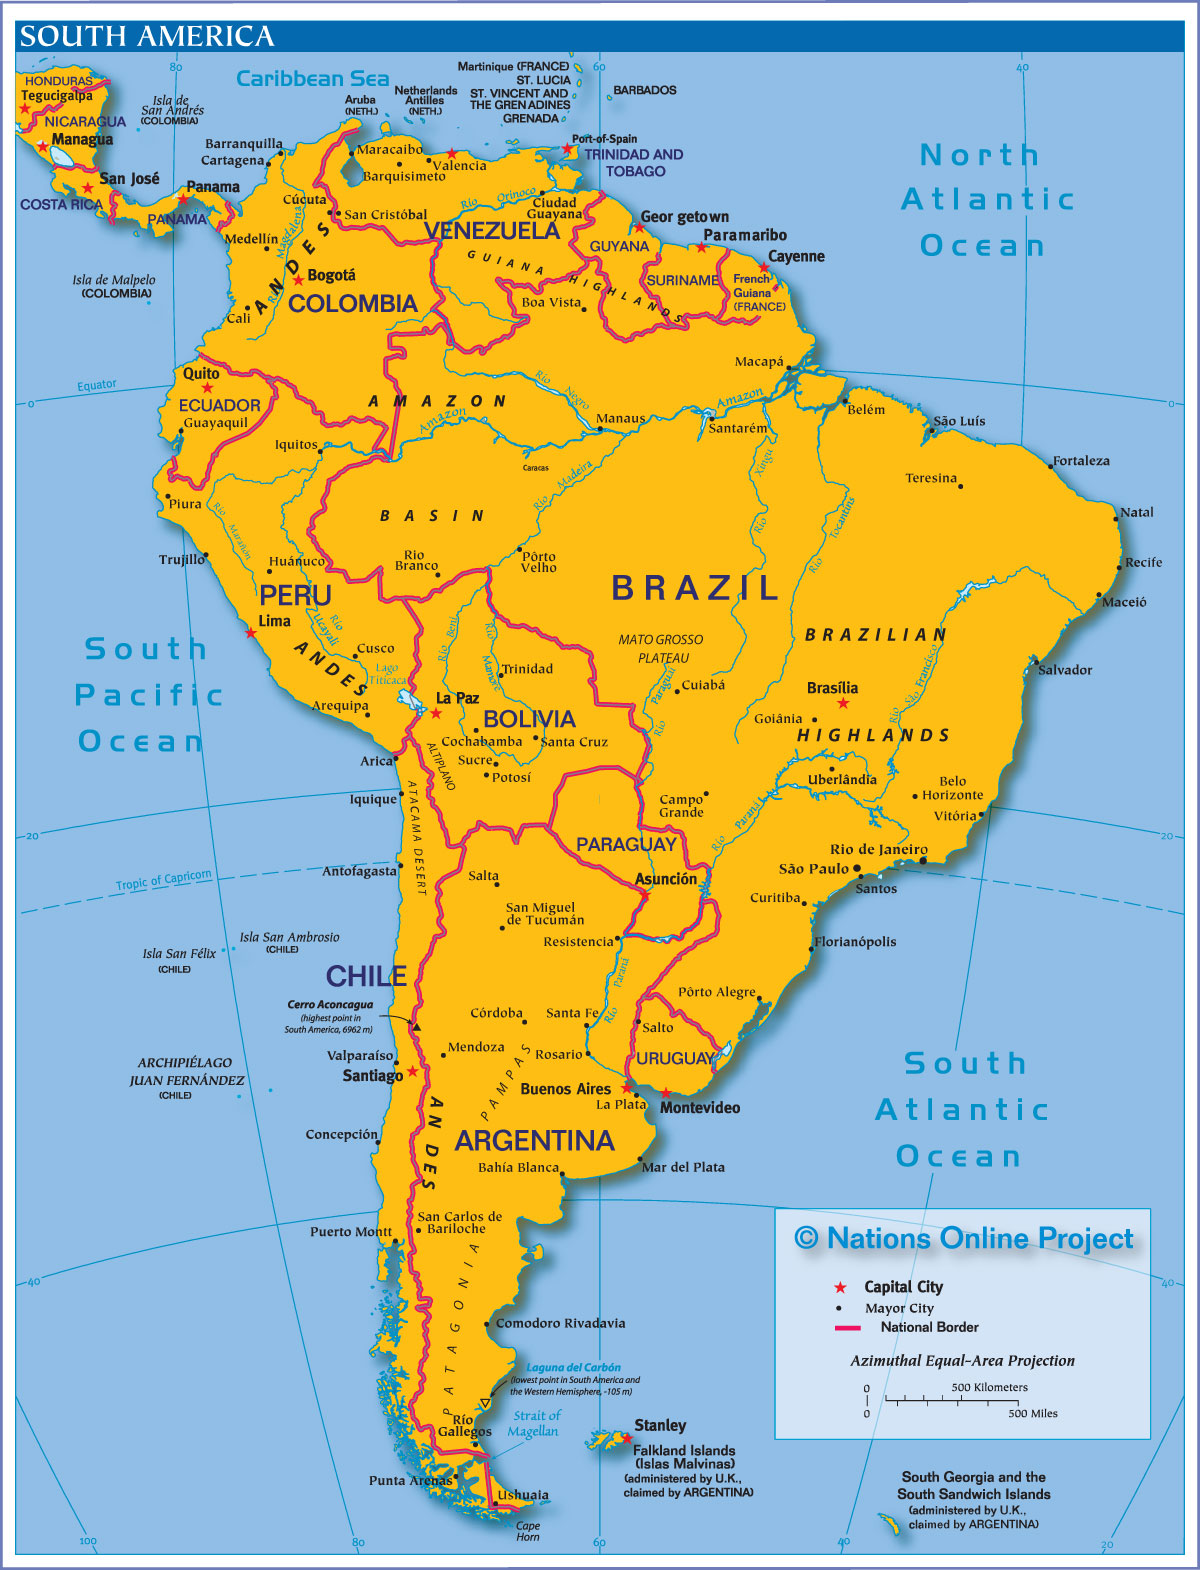 Phone personals central america Discover North America tours with best Globus Tours